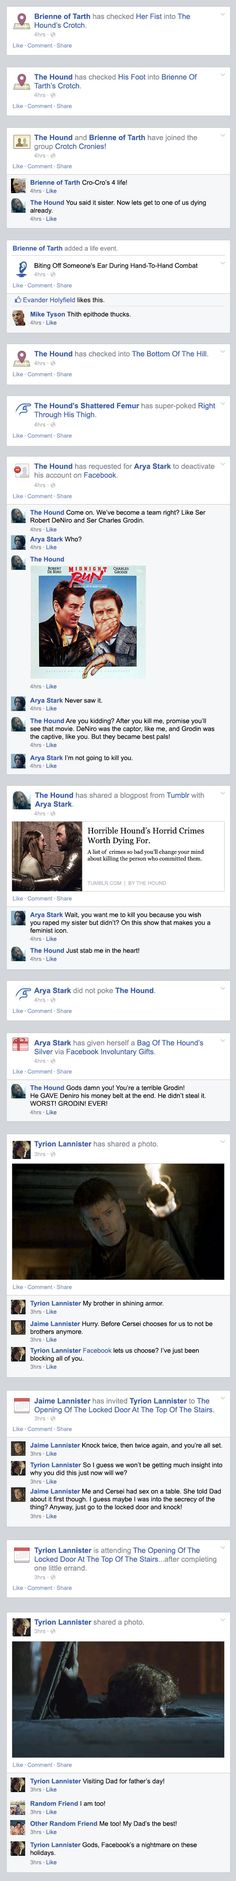 If Game of Thrones took place entirely on Facebook - The Season 4 Finale. | GoT Recap Season 4 | Happy Place